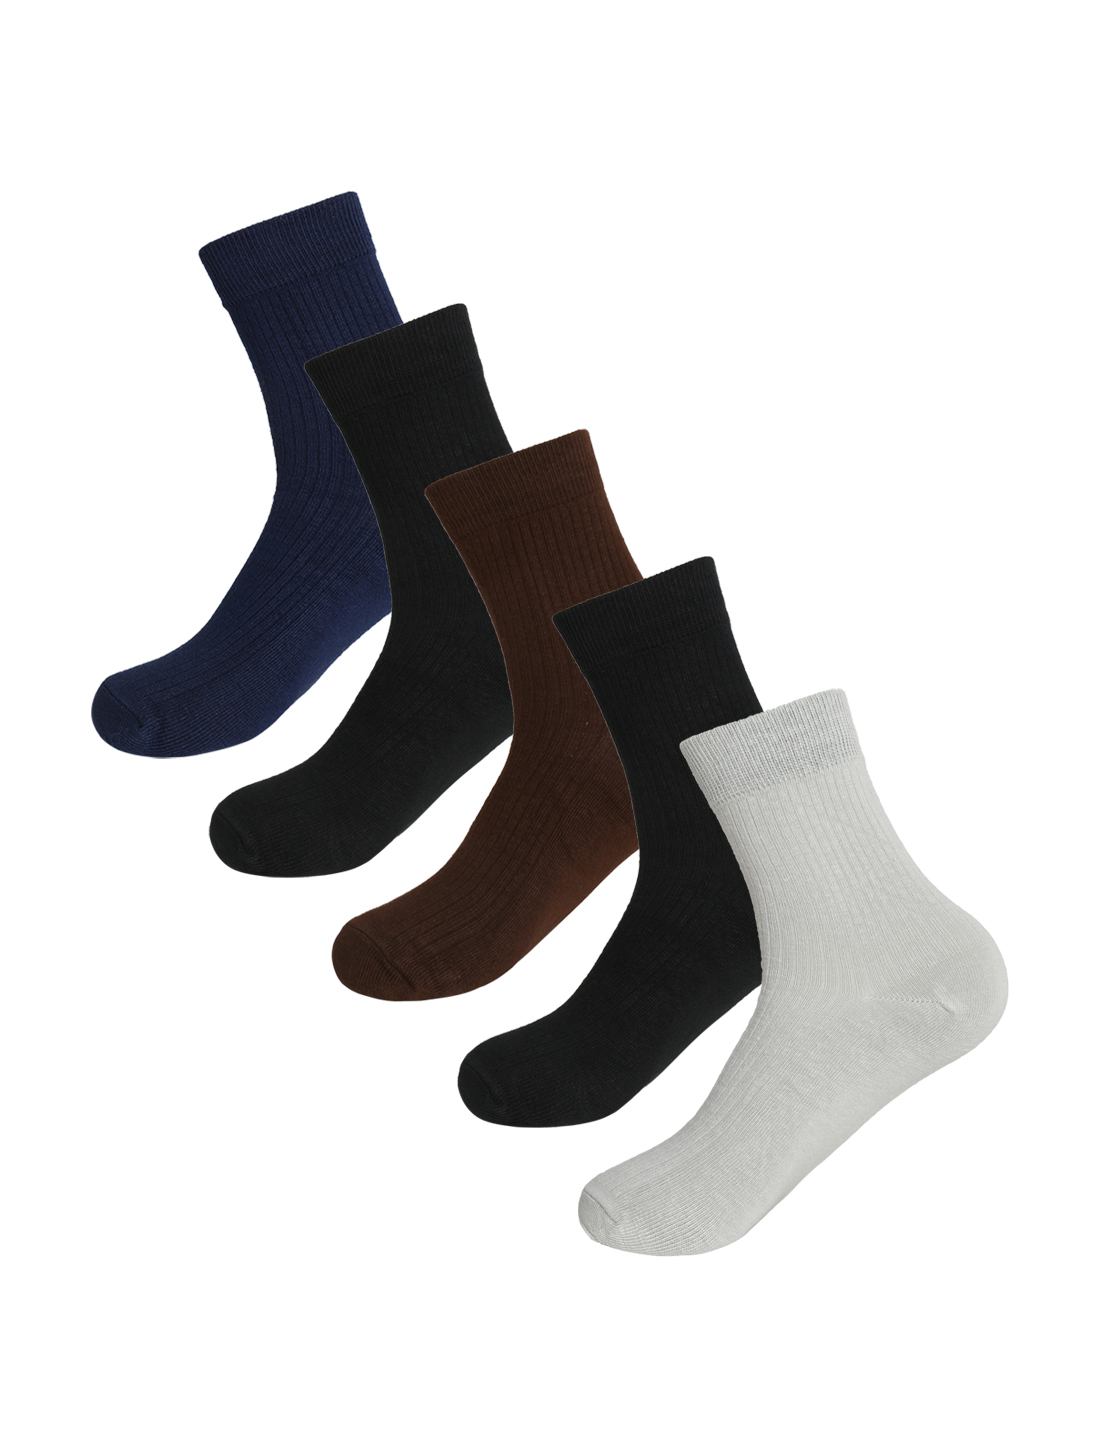 Men Warm Thick Thermal Stretchy Crew Socks 5 Pack 10-12 Assorted-Pure